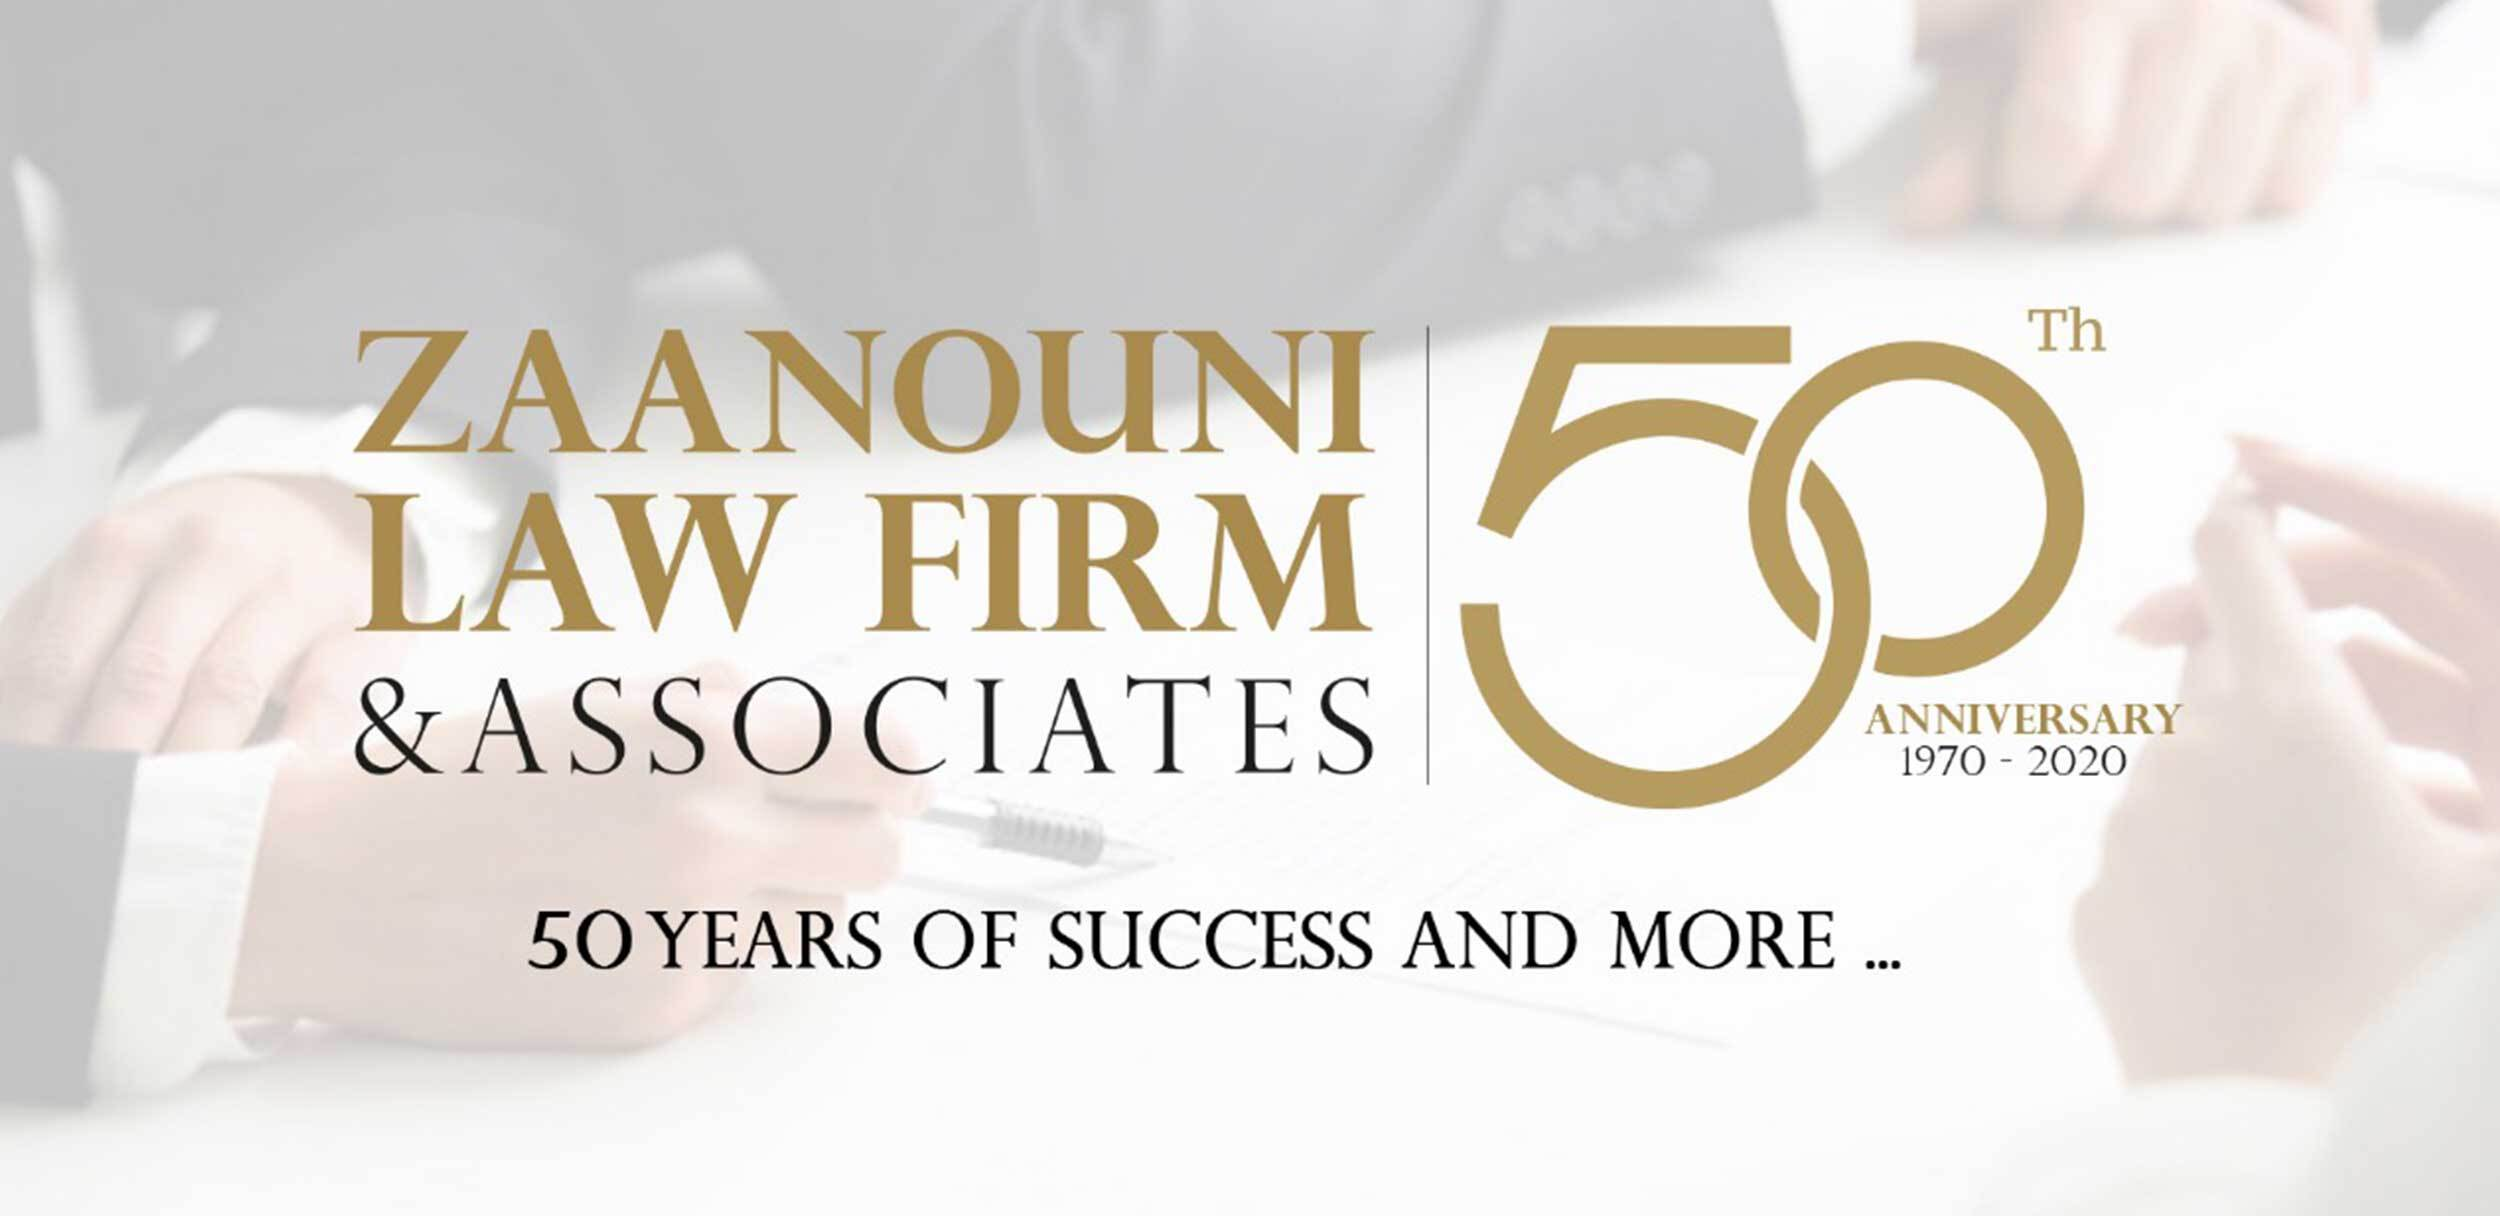 ZLF & Associates - 50 years of sucess